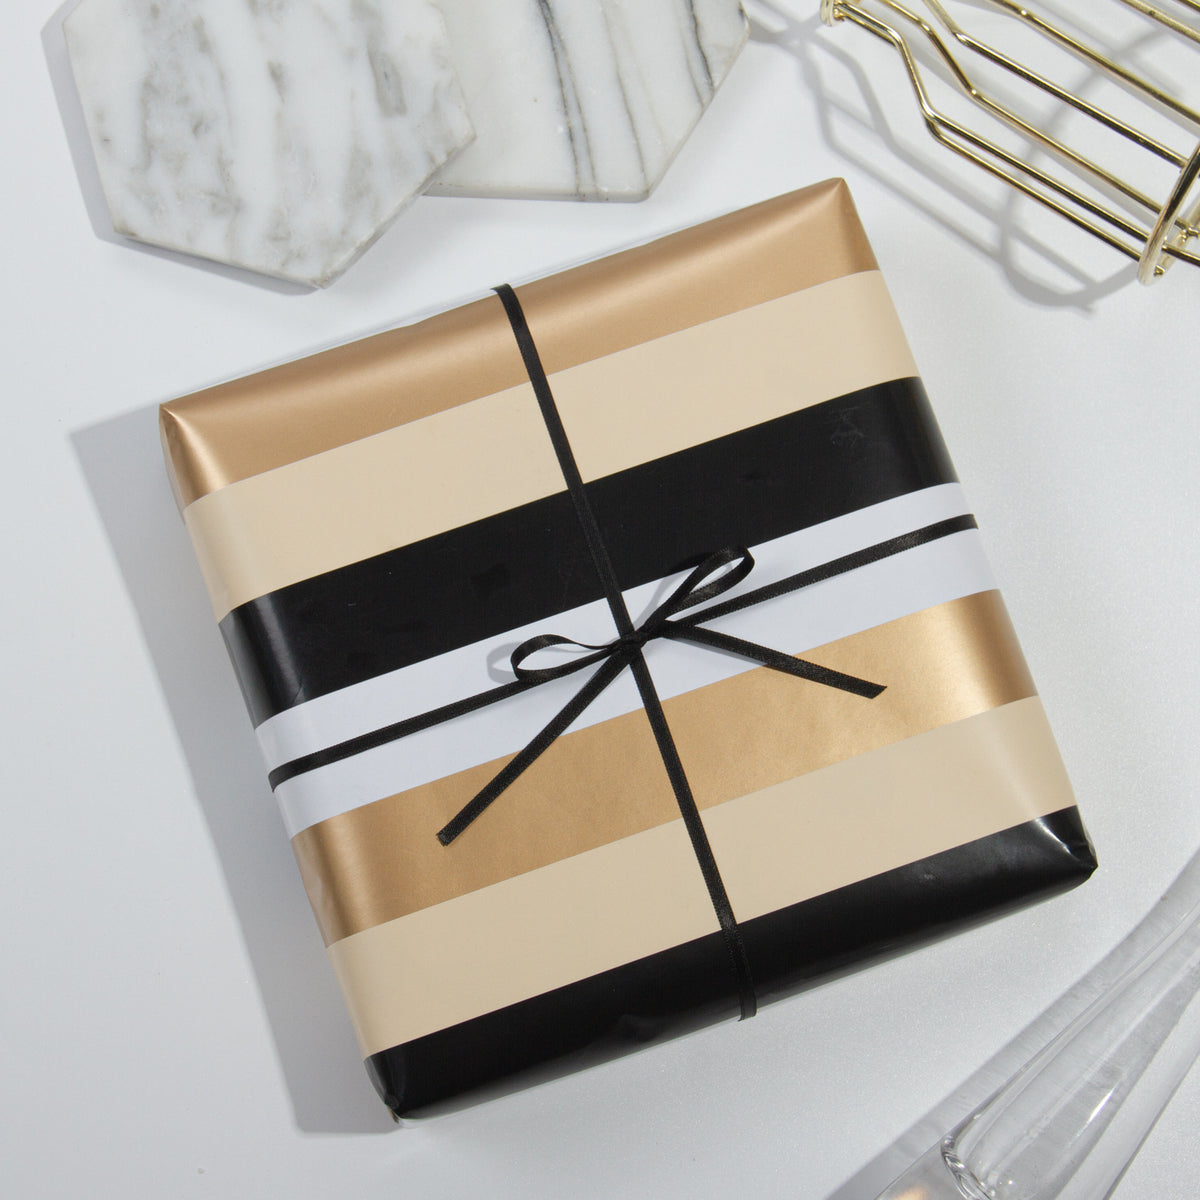 Wrapaholic-Gold-Foil-Stripes-Set-Wrapping-Paper-Roll-6